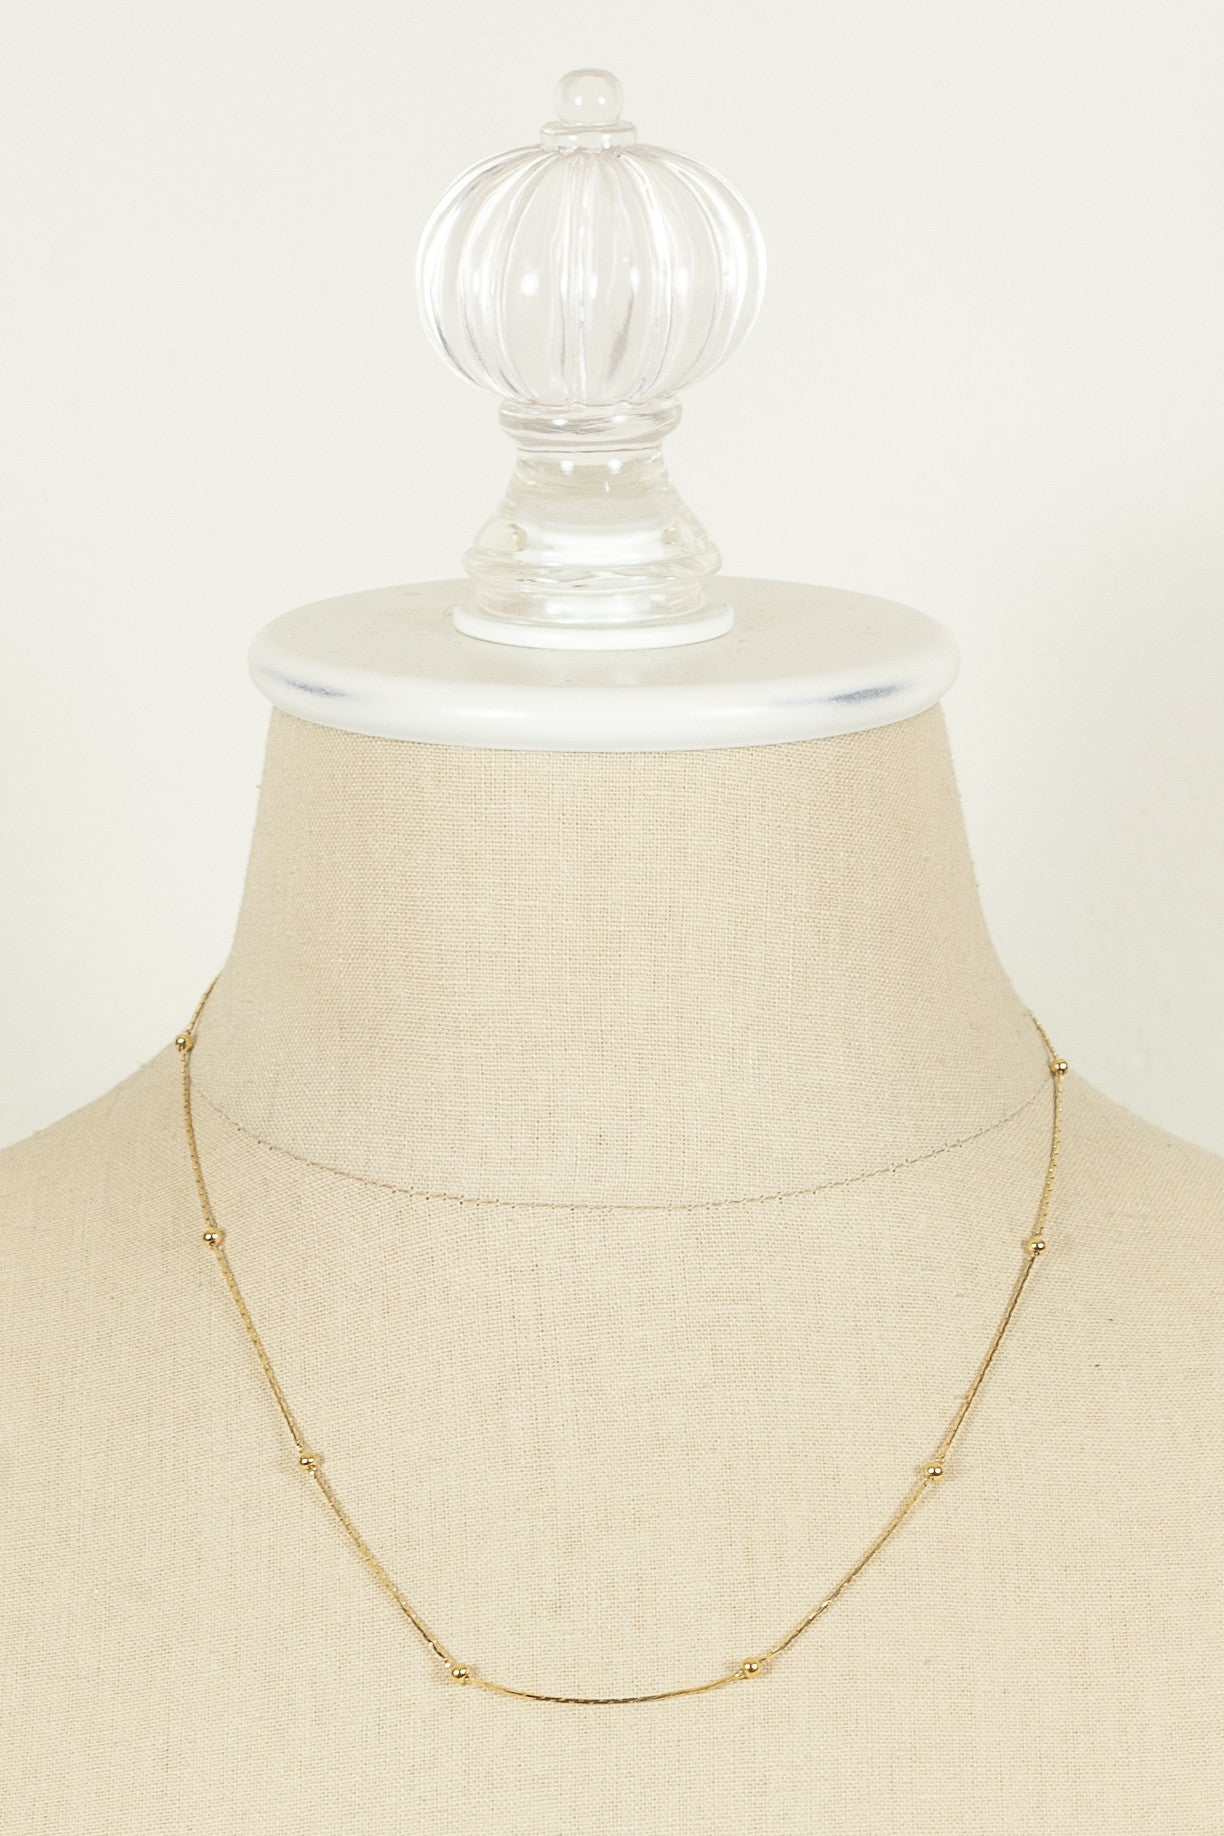 70's__Monet__Dainty Ball Chain Necklace